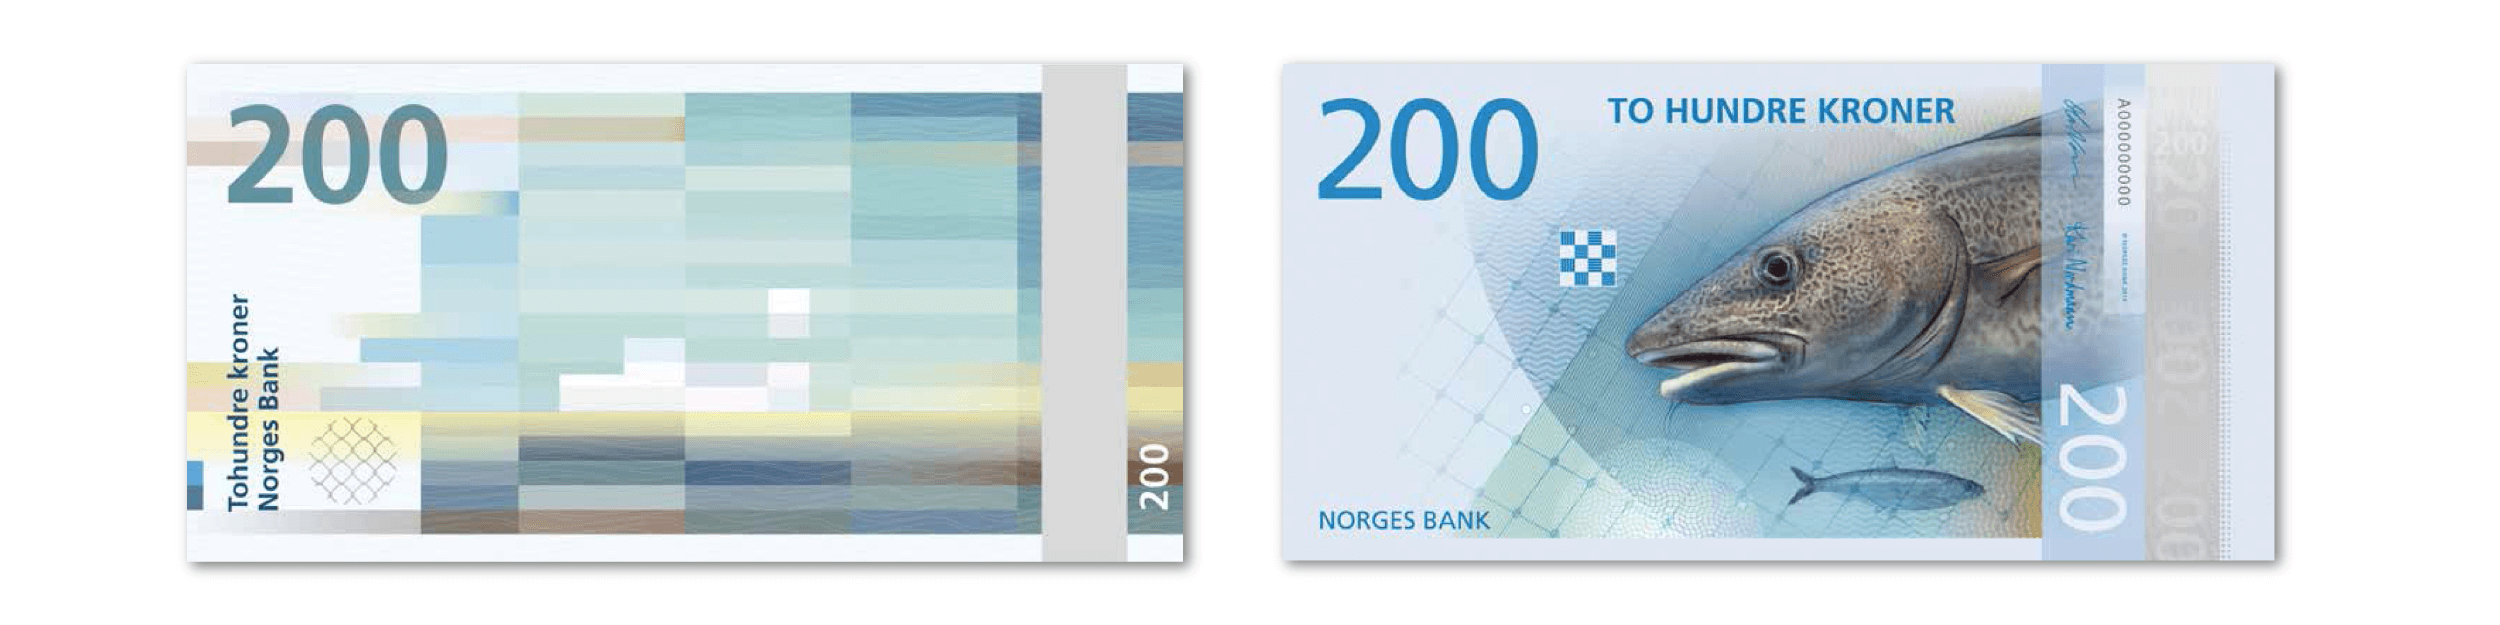 New Currency Norway Norway Currency Redesign_200